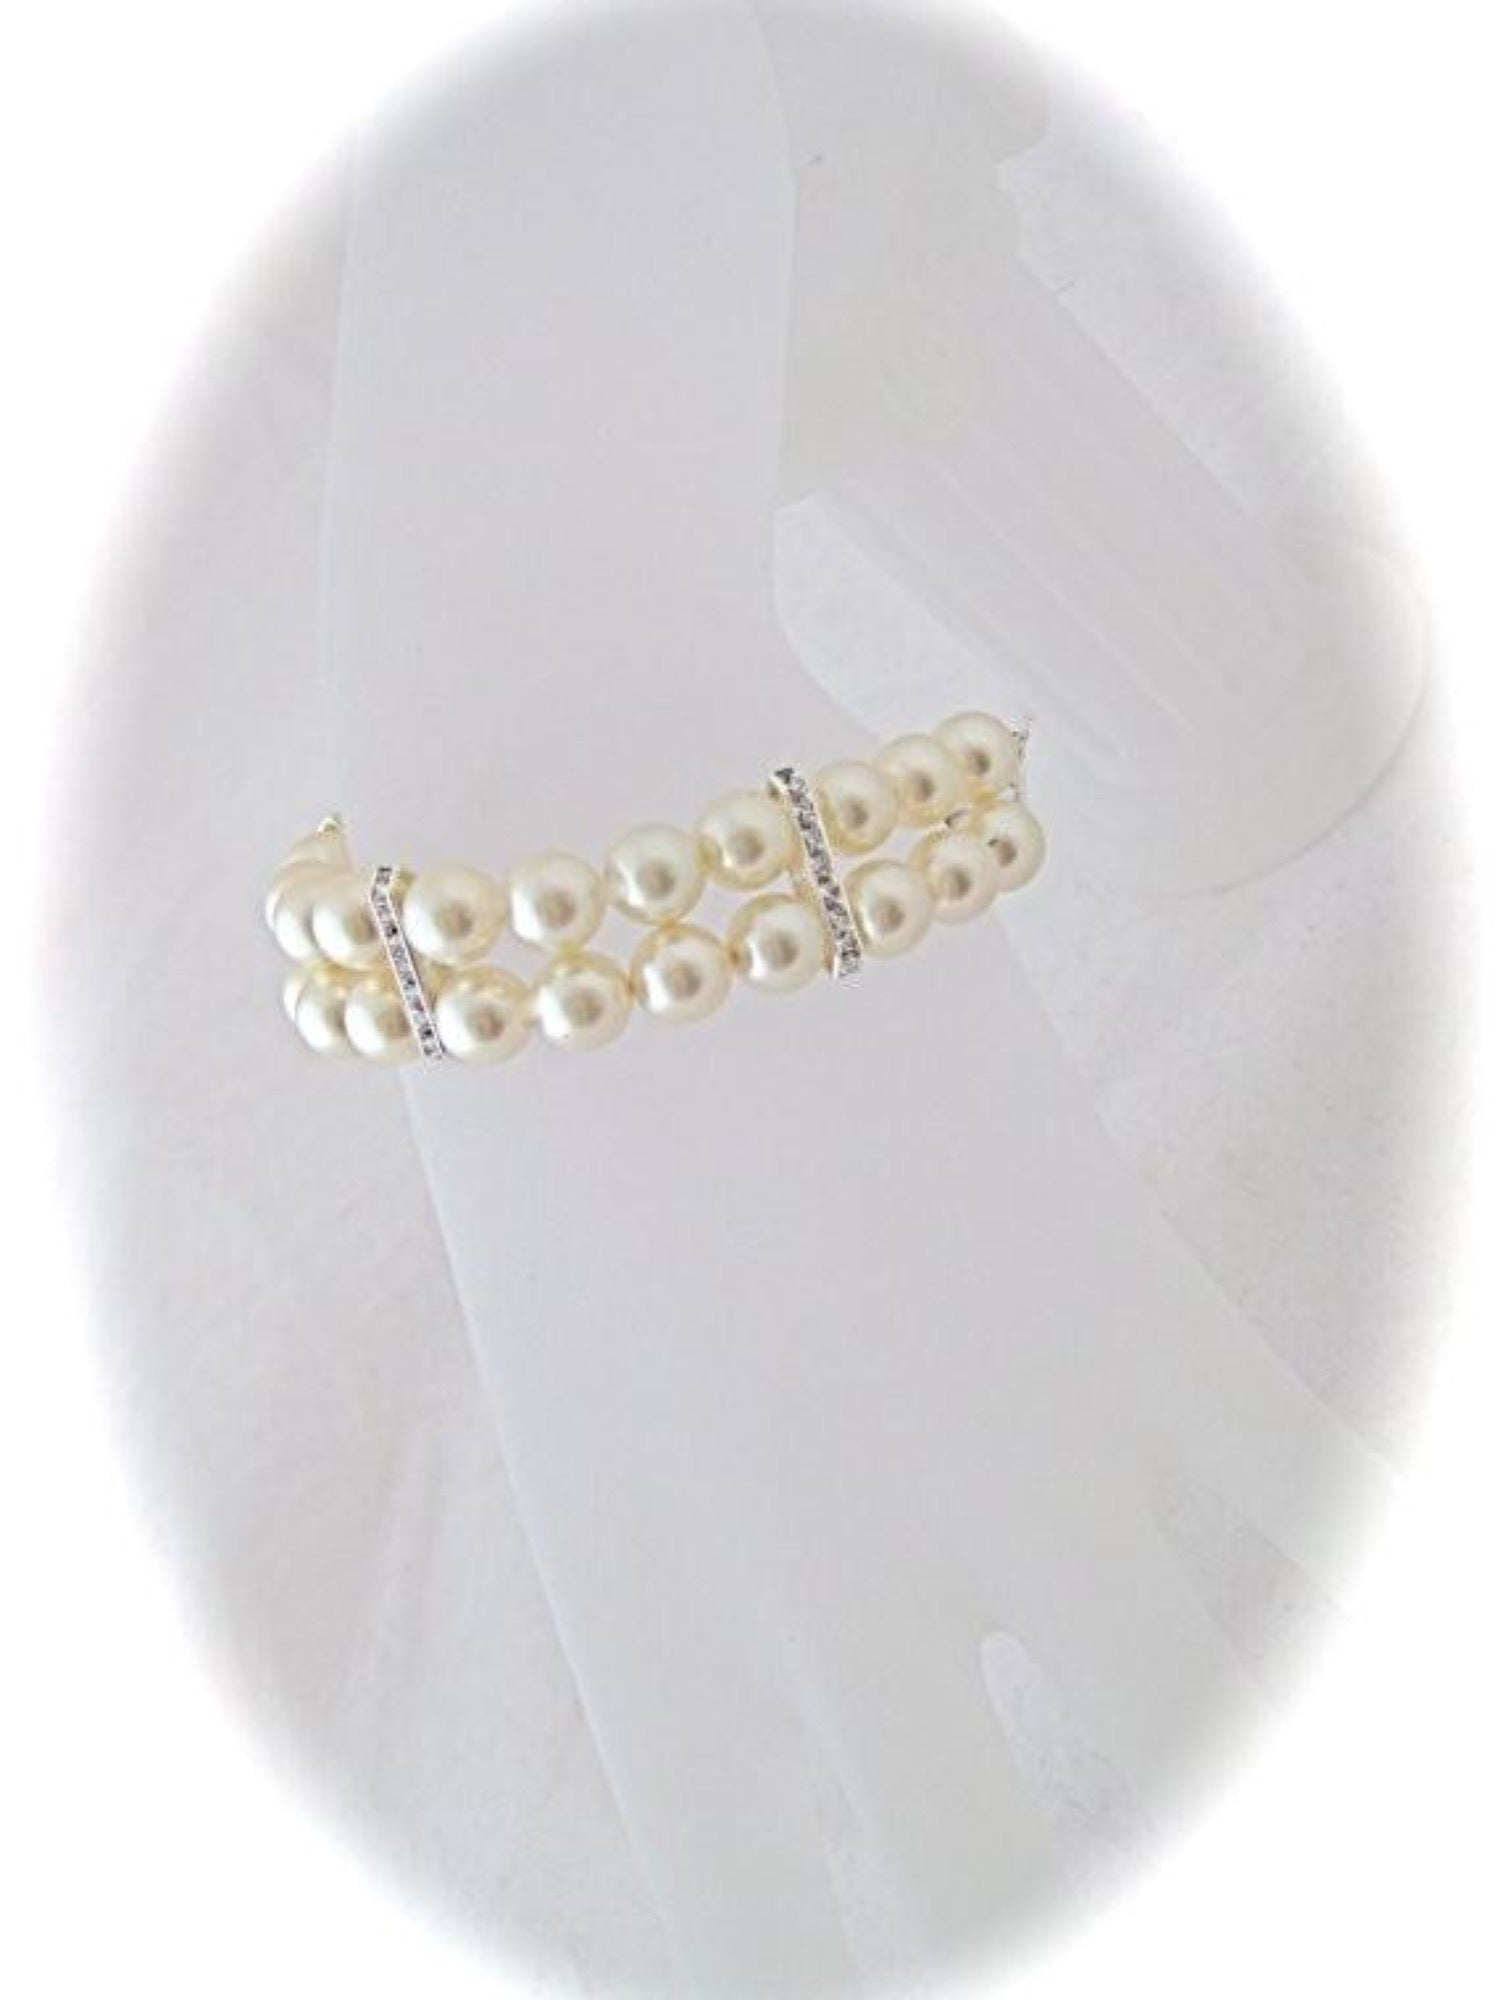 Cream Pearl Bracelet Wedding Jewelry for brides - Clairesbridal - 3